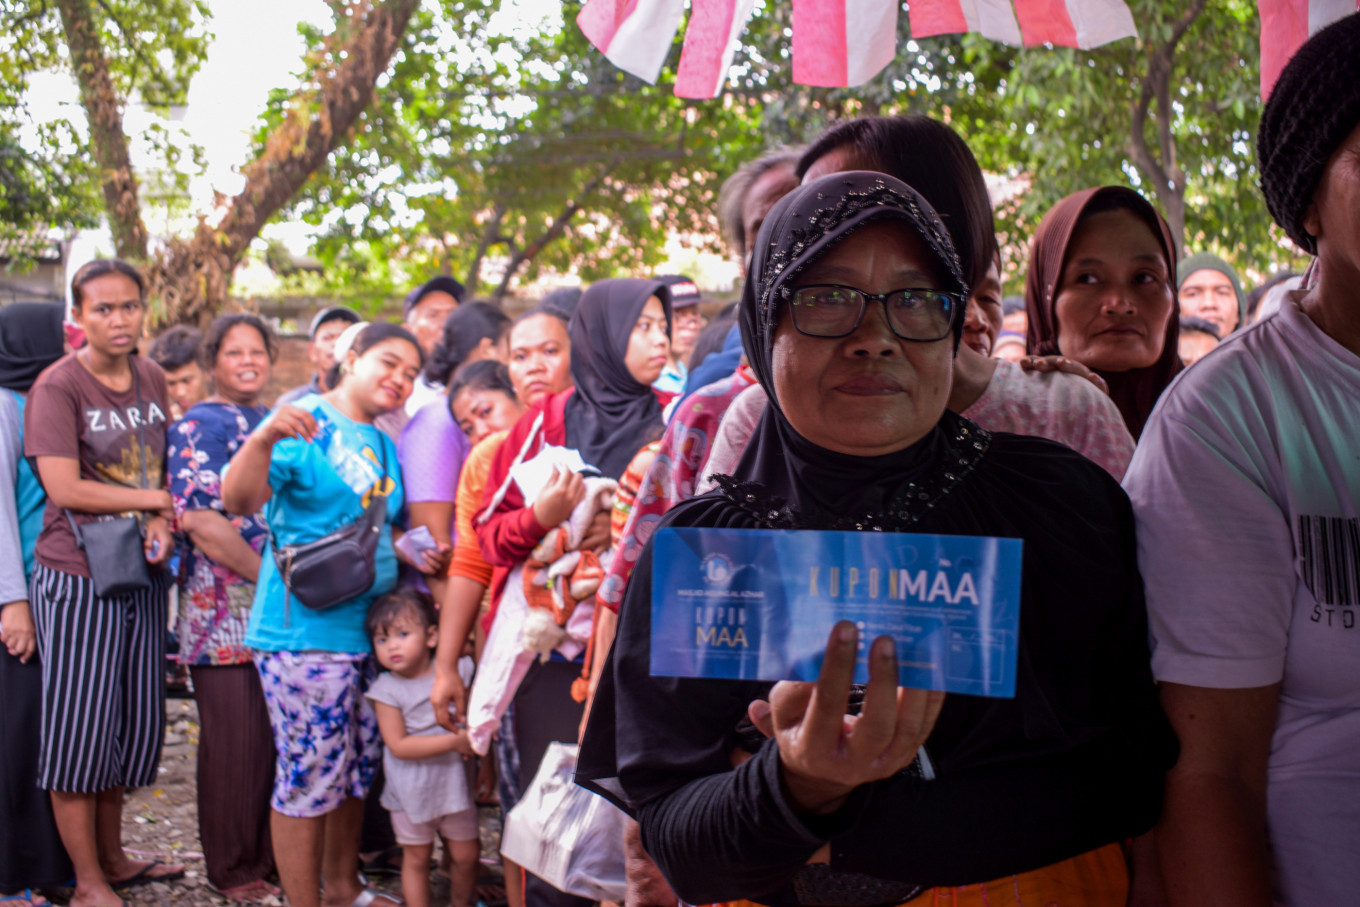 Residents line up to exchange coupons with qurban (sacrificial) meat prepared at Al Azhar Grand Mosque in South Jakarta on Sunday. The mosque had prepared 200 goats and 30 cows as qurban. JP/Anggie Angela